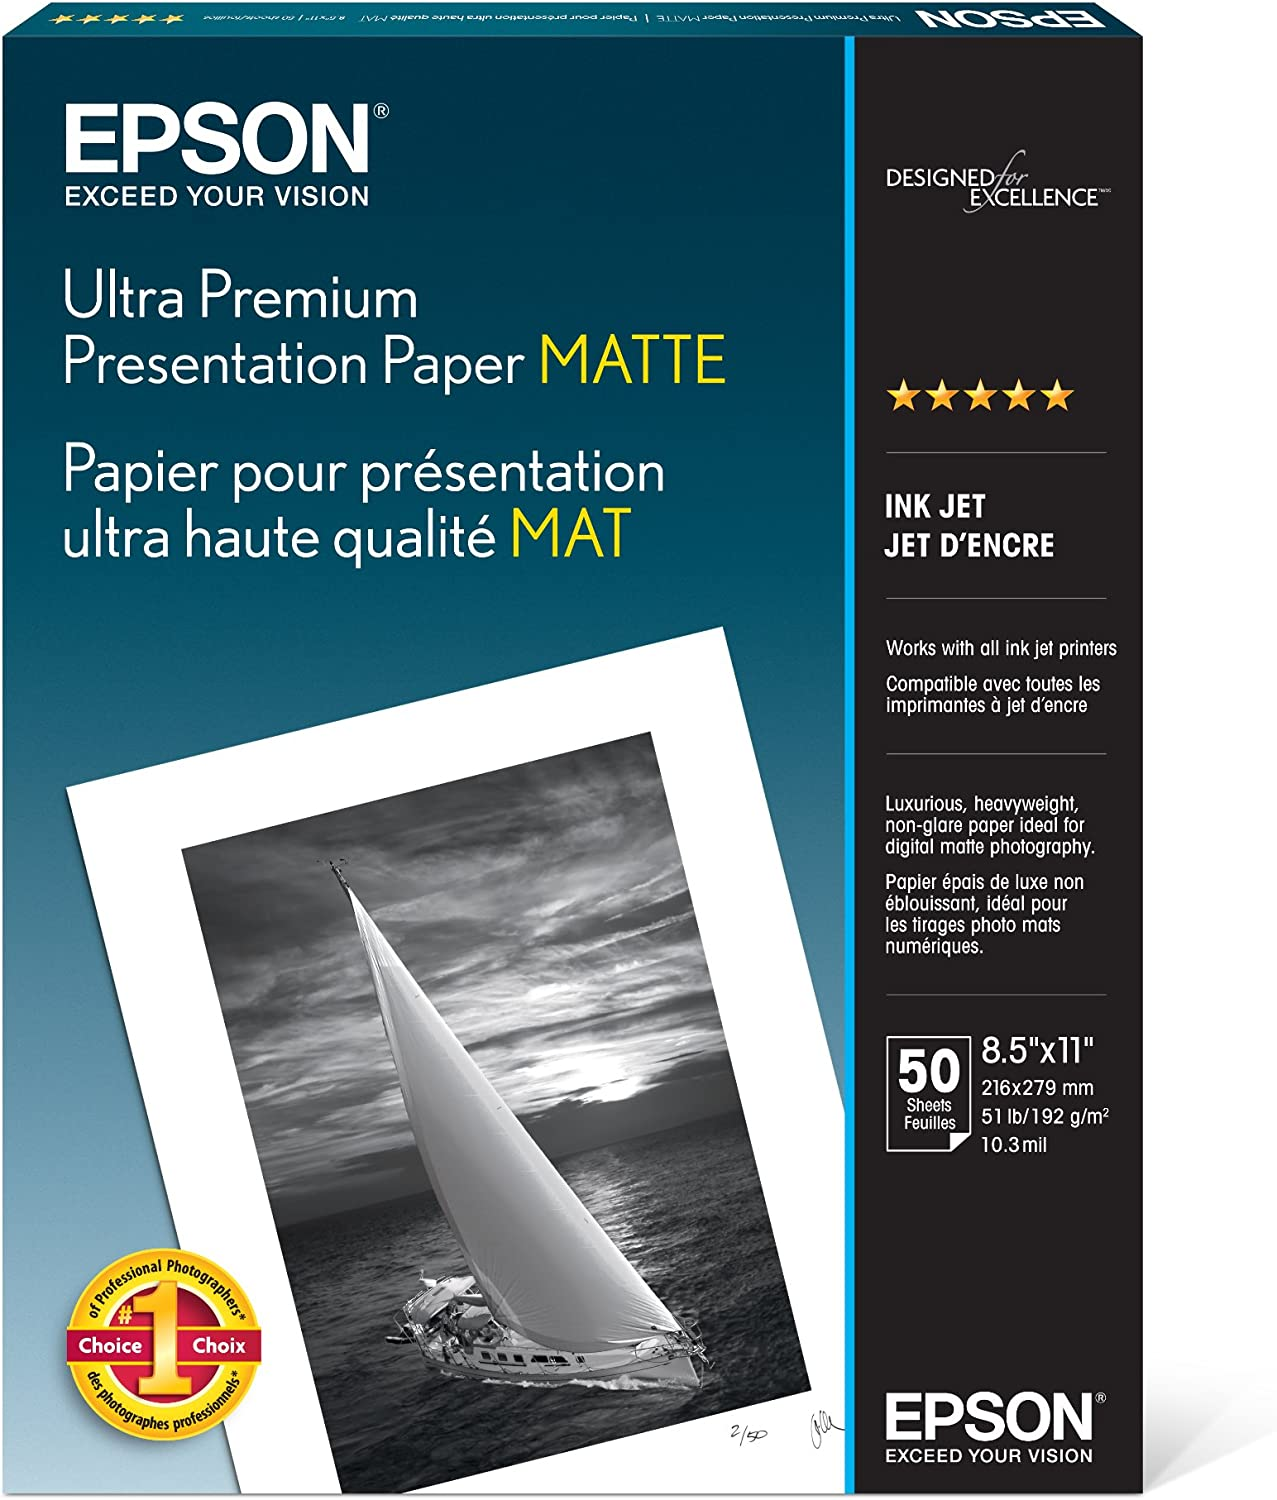 Epson Ultra Premium Presentation Paper MATTE (8.5x11 Inches, 50 Sheets) (S041341),White